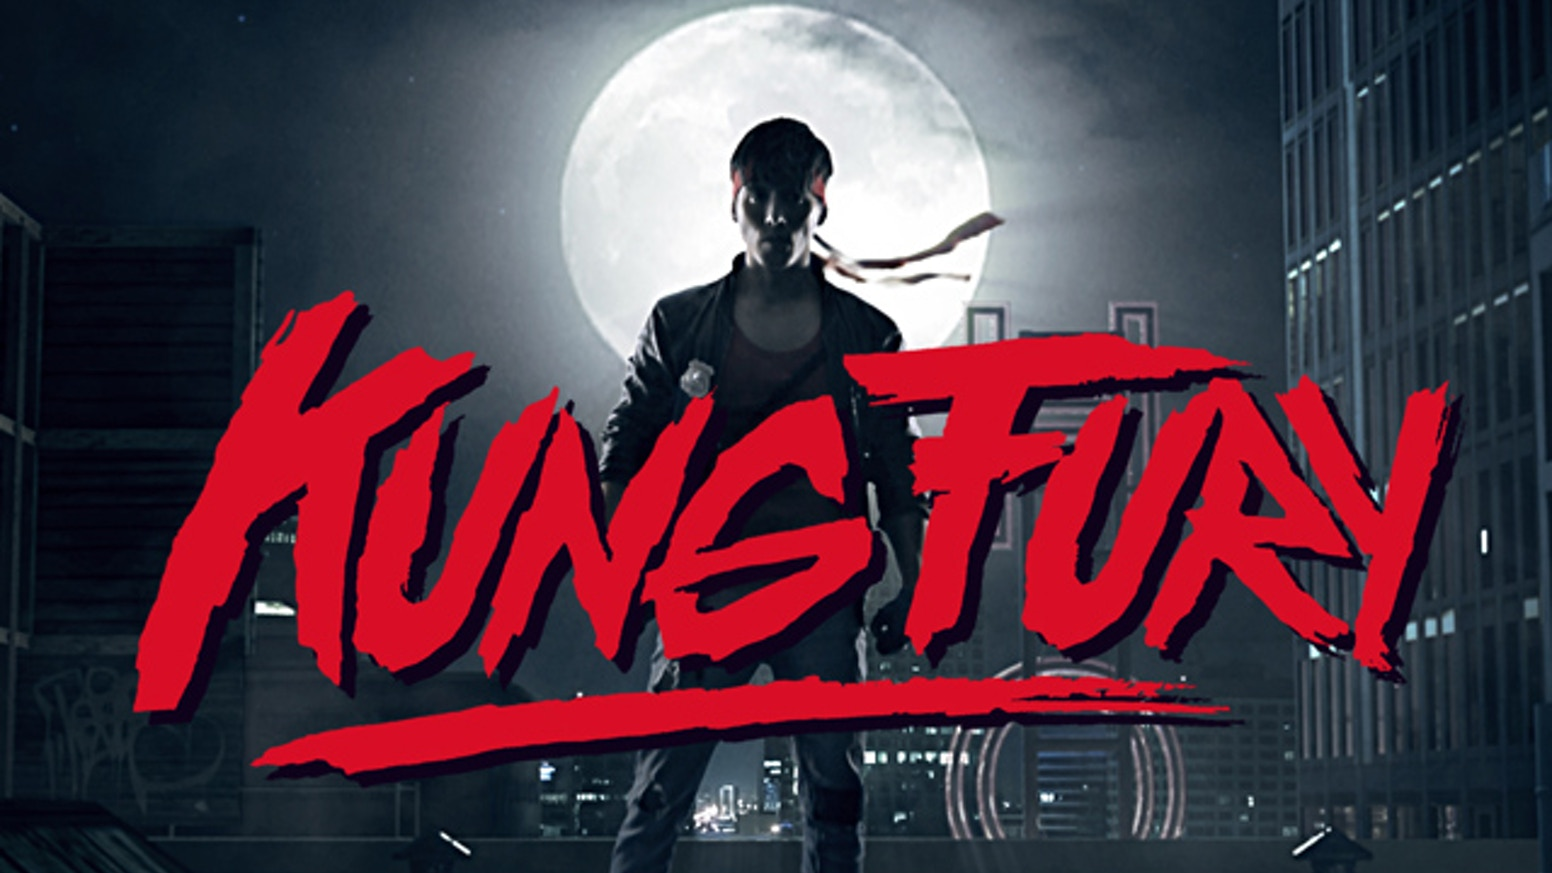 '80s Martial Arts Comedy Homage Gets Feature Followup Kung Fury 2' Starring Michael Fassbender to Shoot in Bulgaria